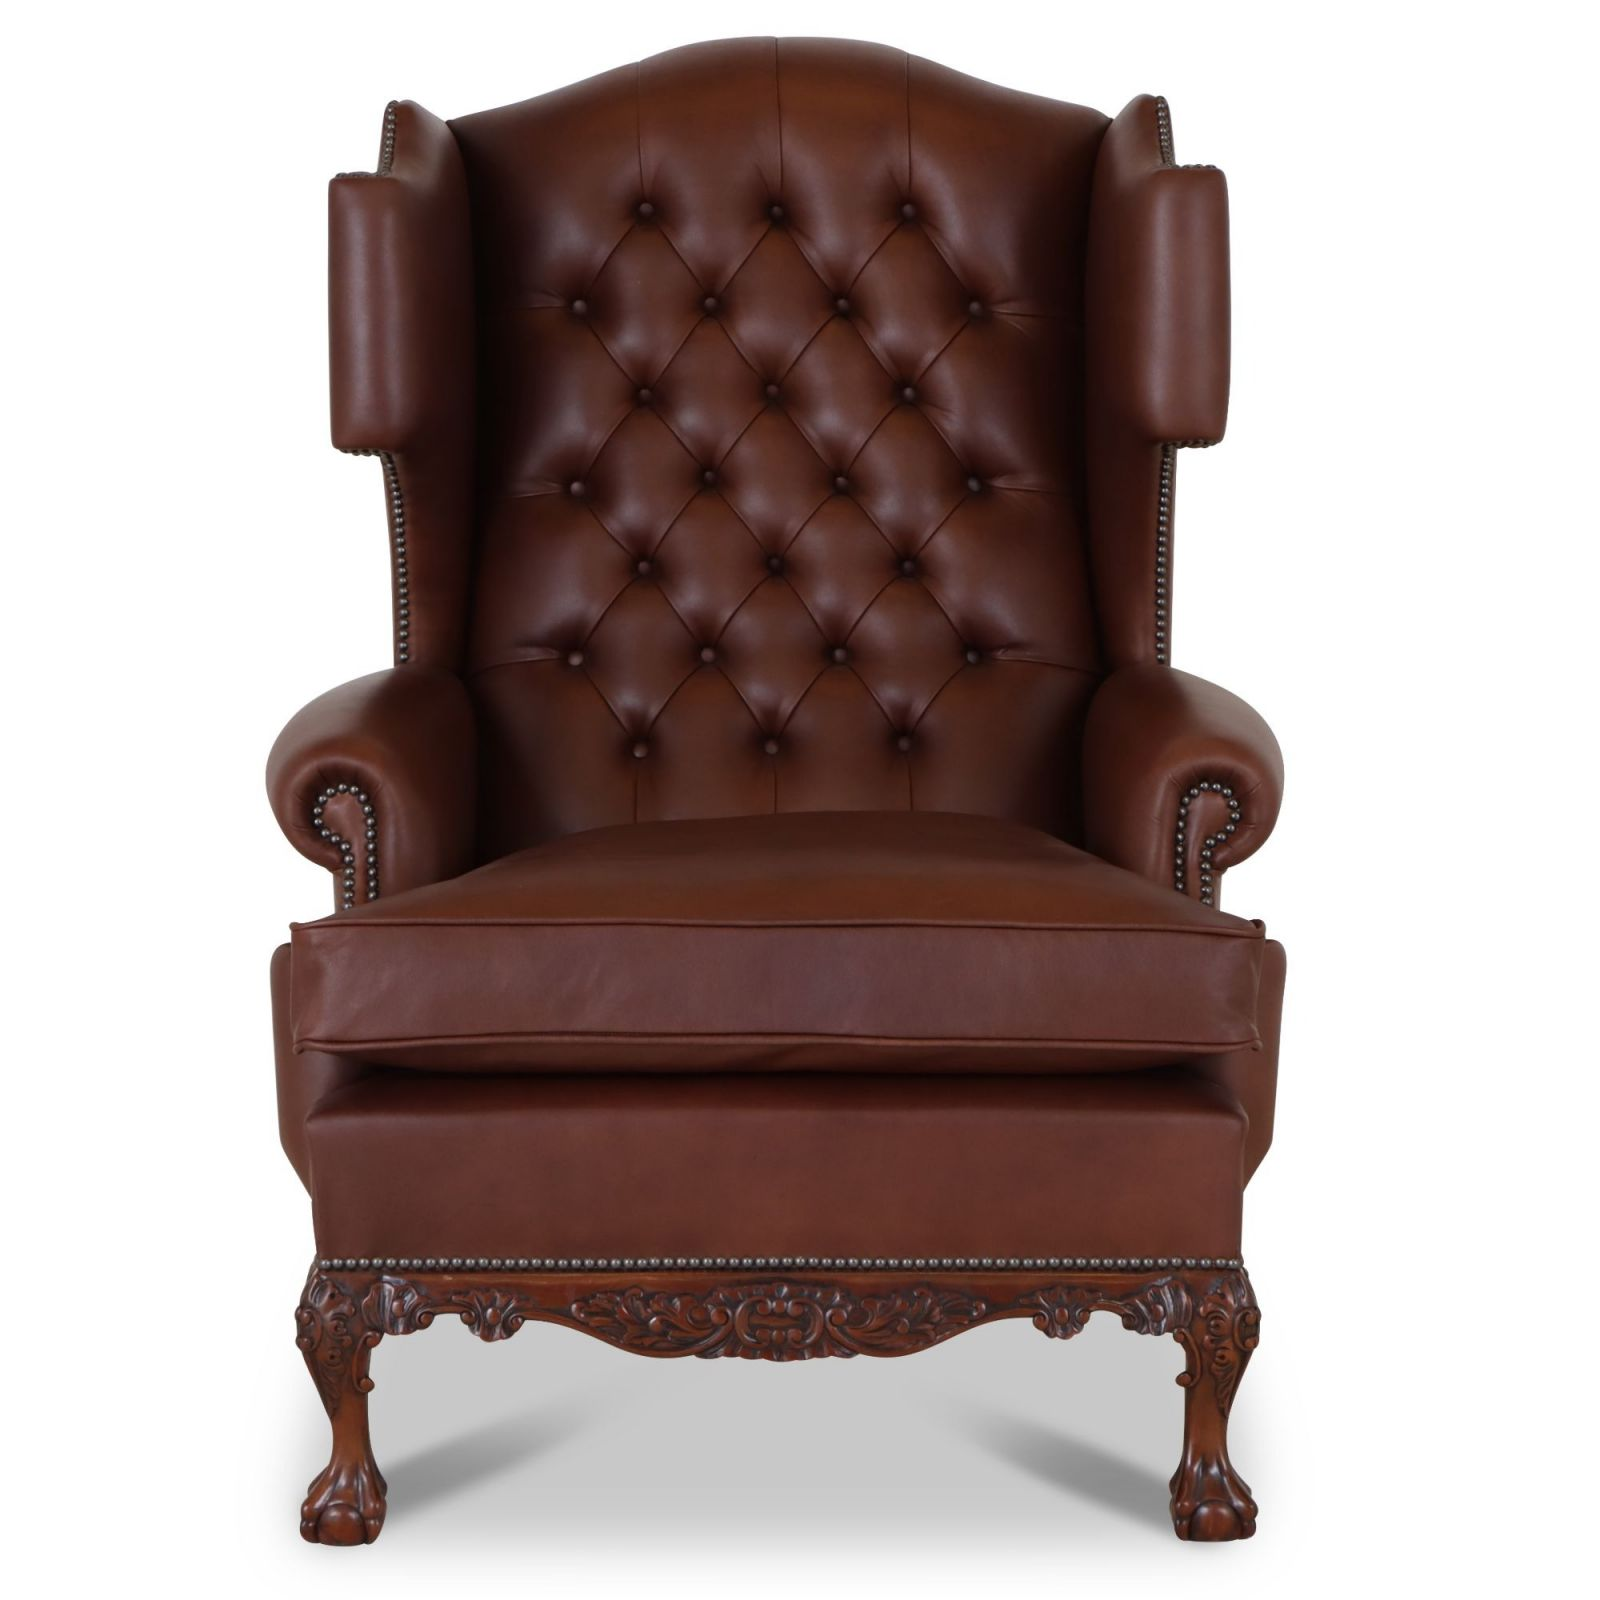 Dryden traditional buttoned leather wing chair